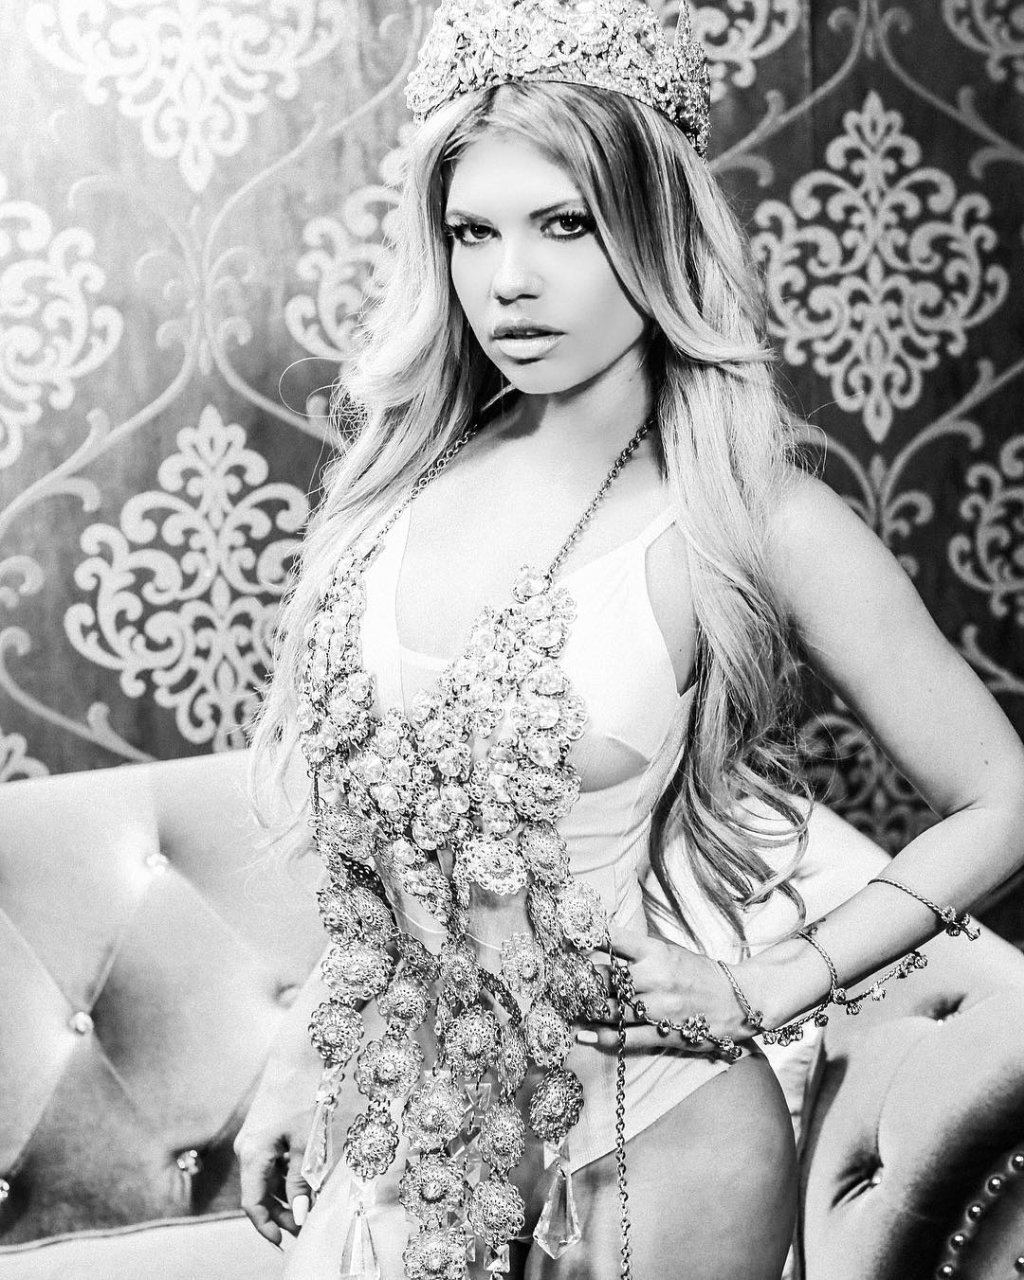 Chanel west coast hot sexy